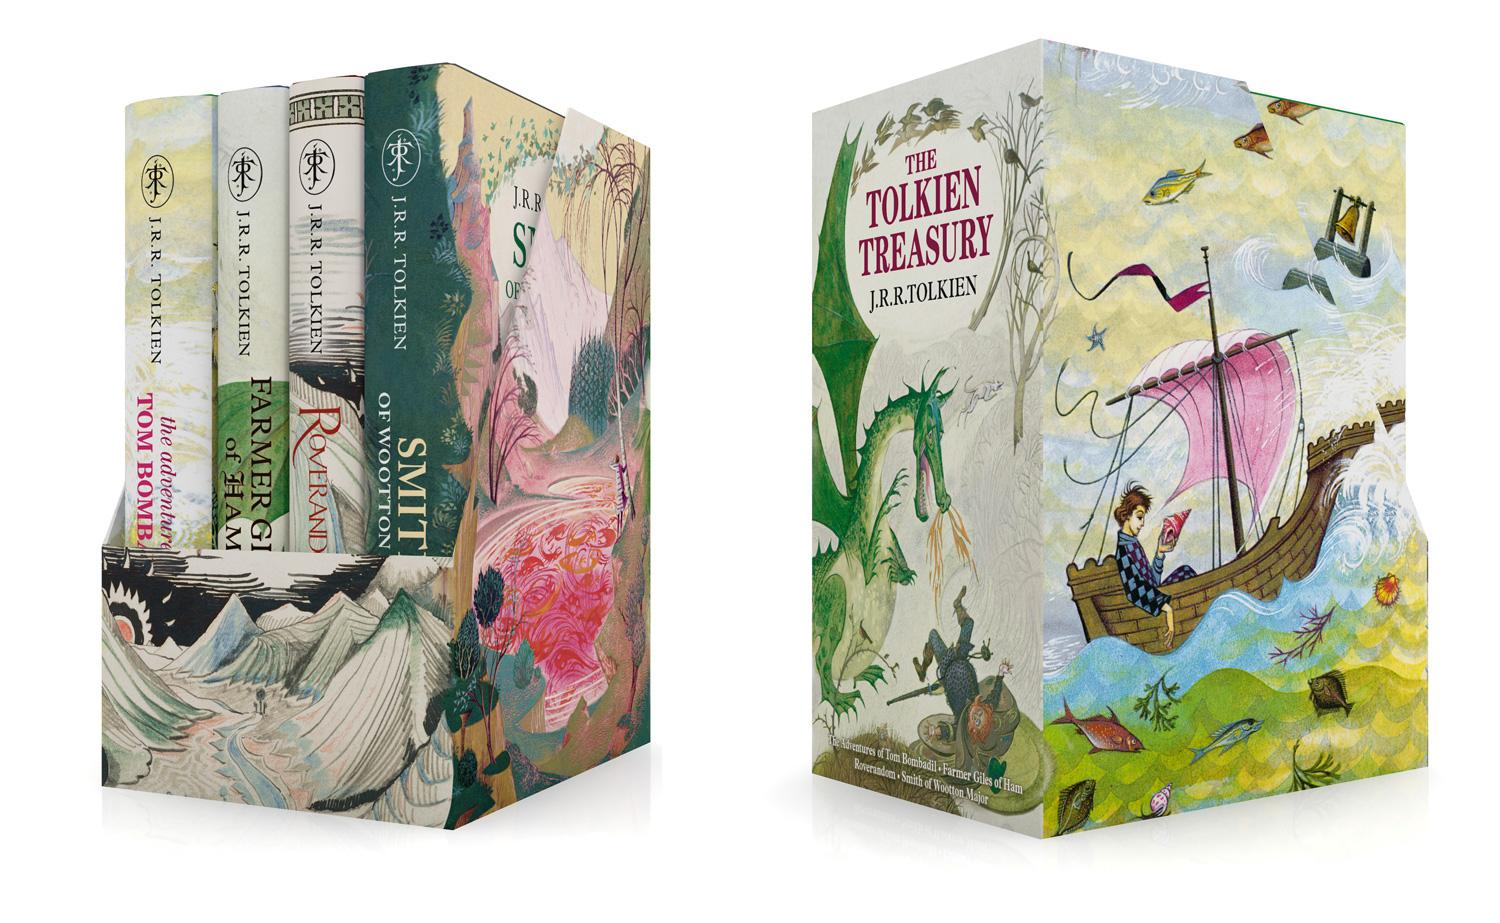 The Tolkien Treasury: Roverandom, Farmer Giles of Ham, The Adventures of Tom Bombadil, Smith of Wootton Major als Buch v